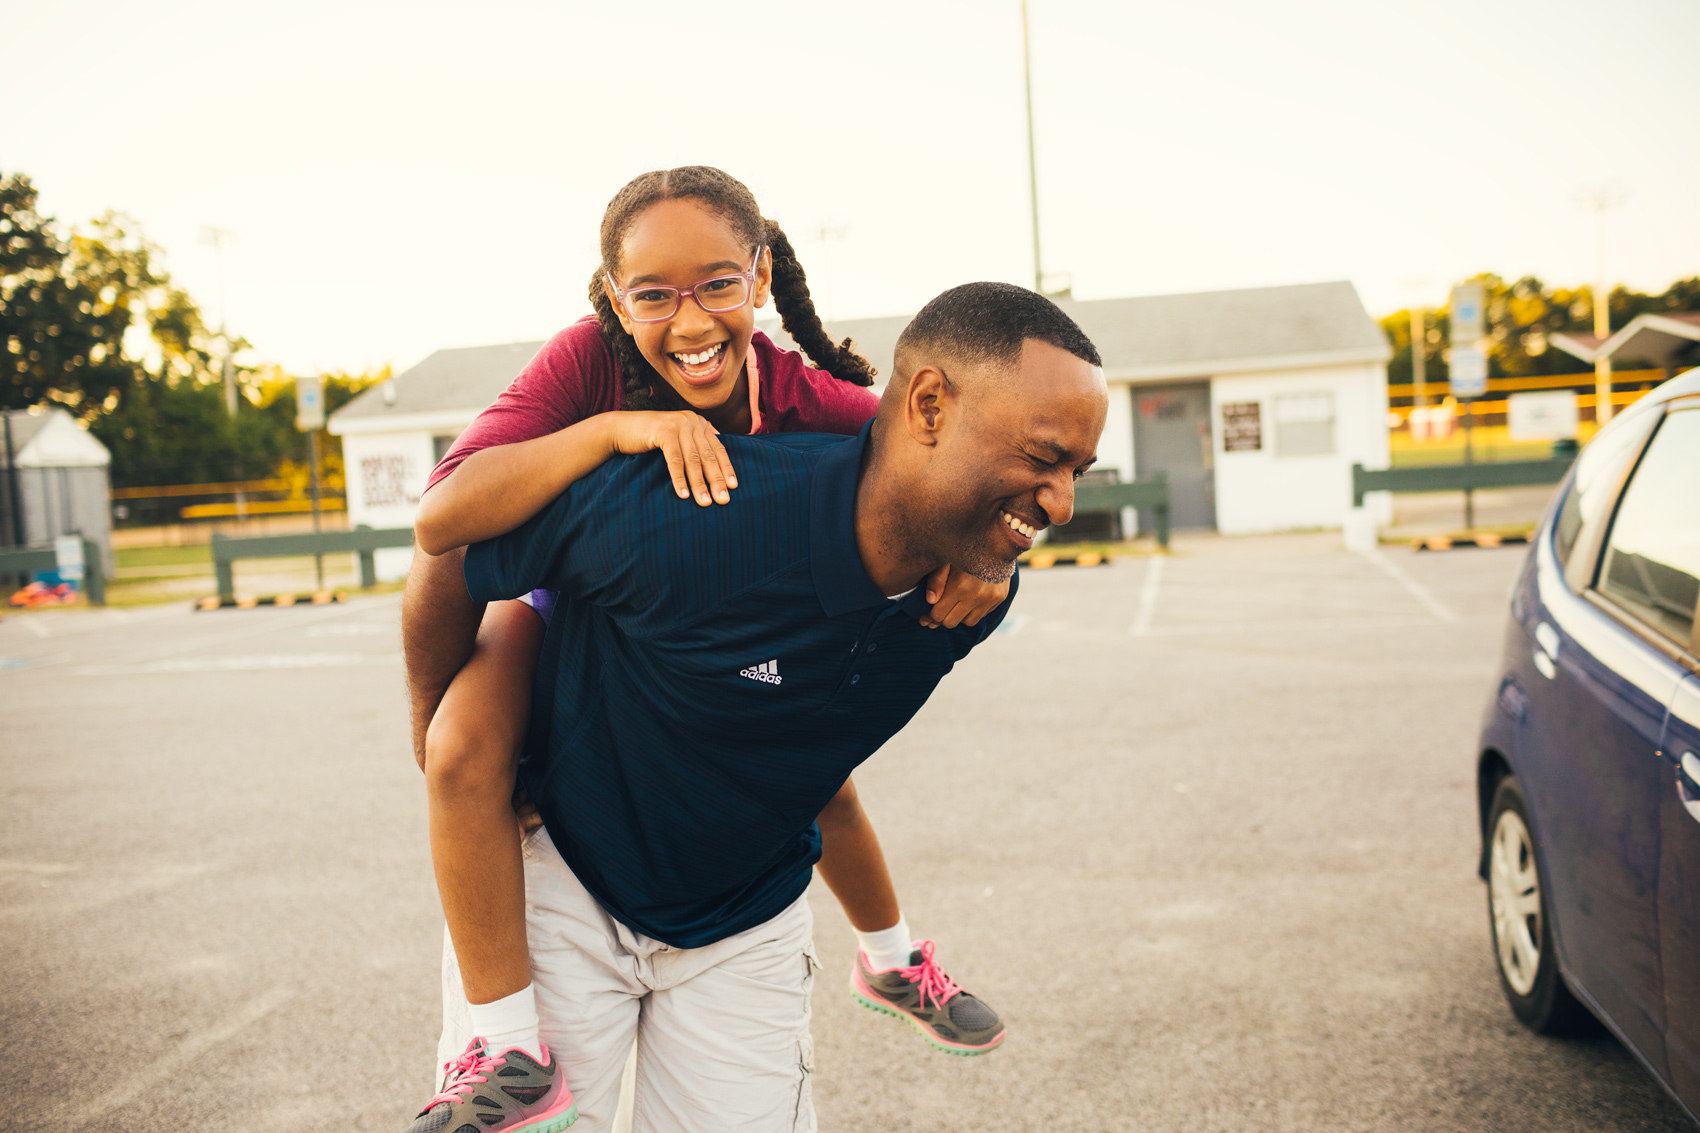 girl piggyback riding father in parking lot, washington dc commercial photography